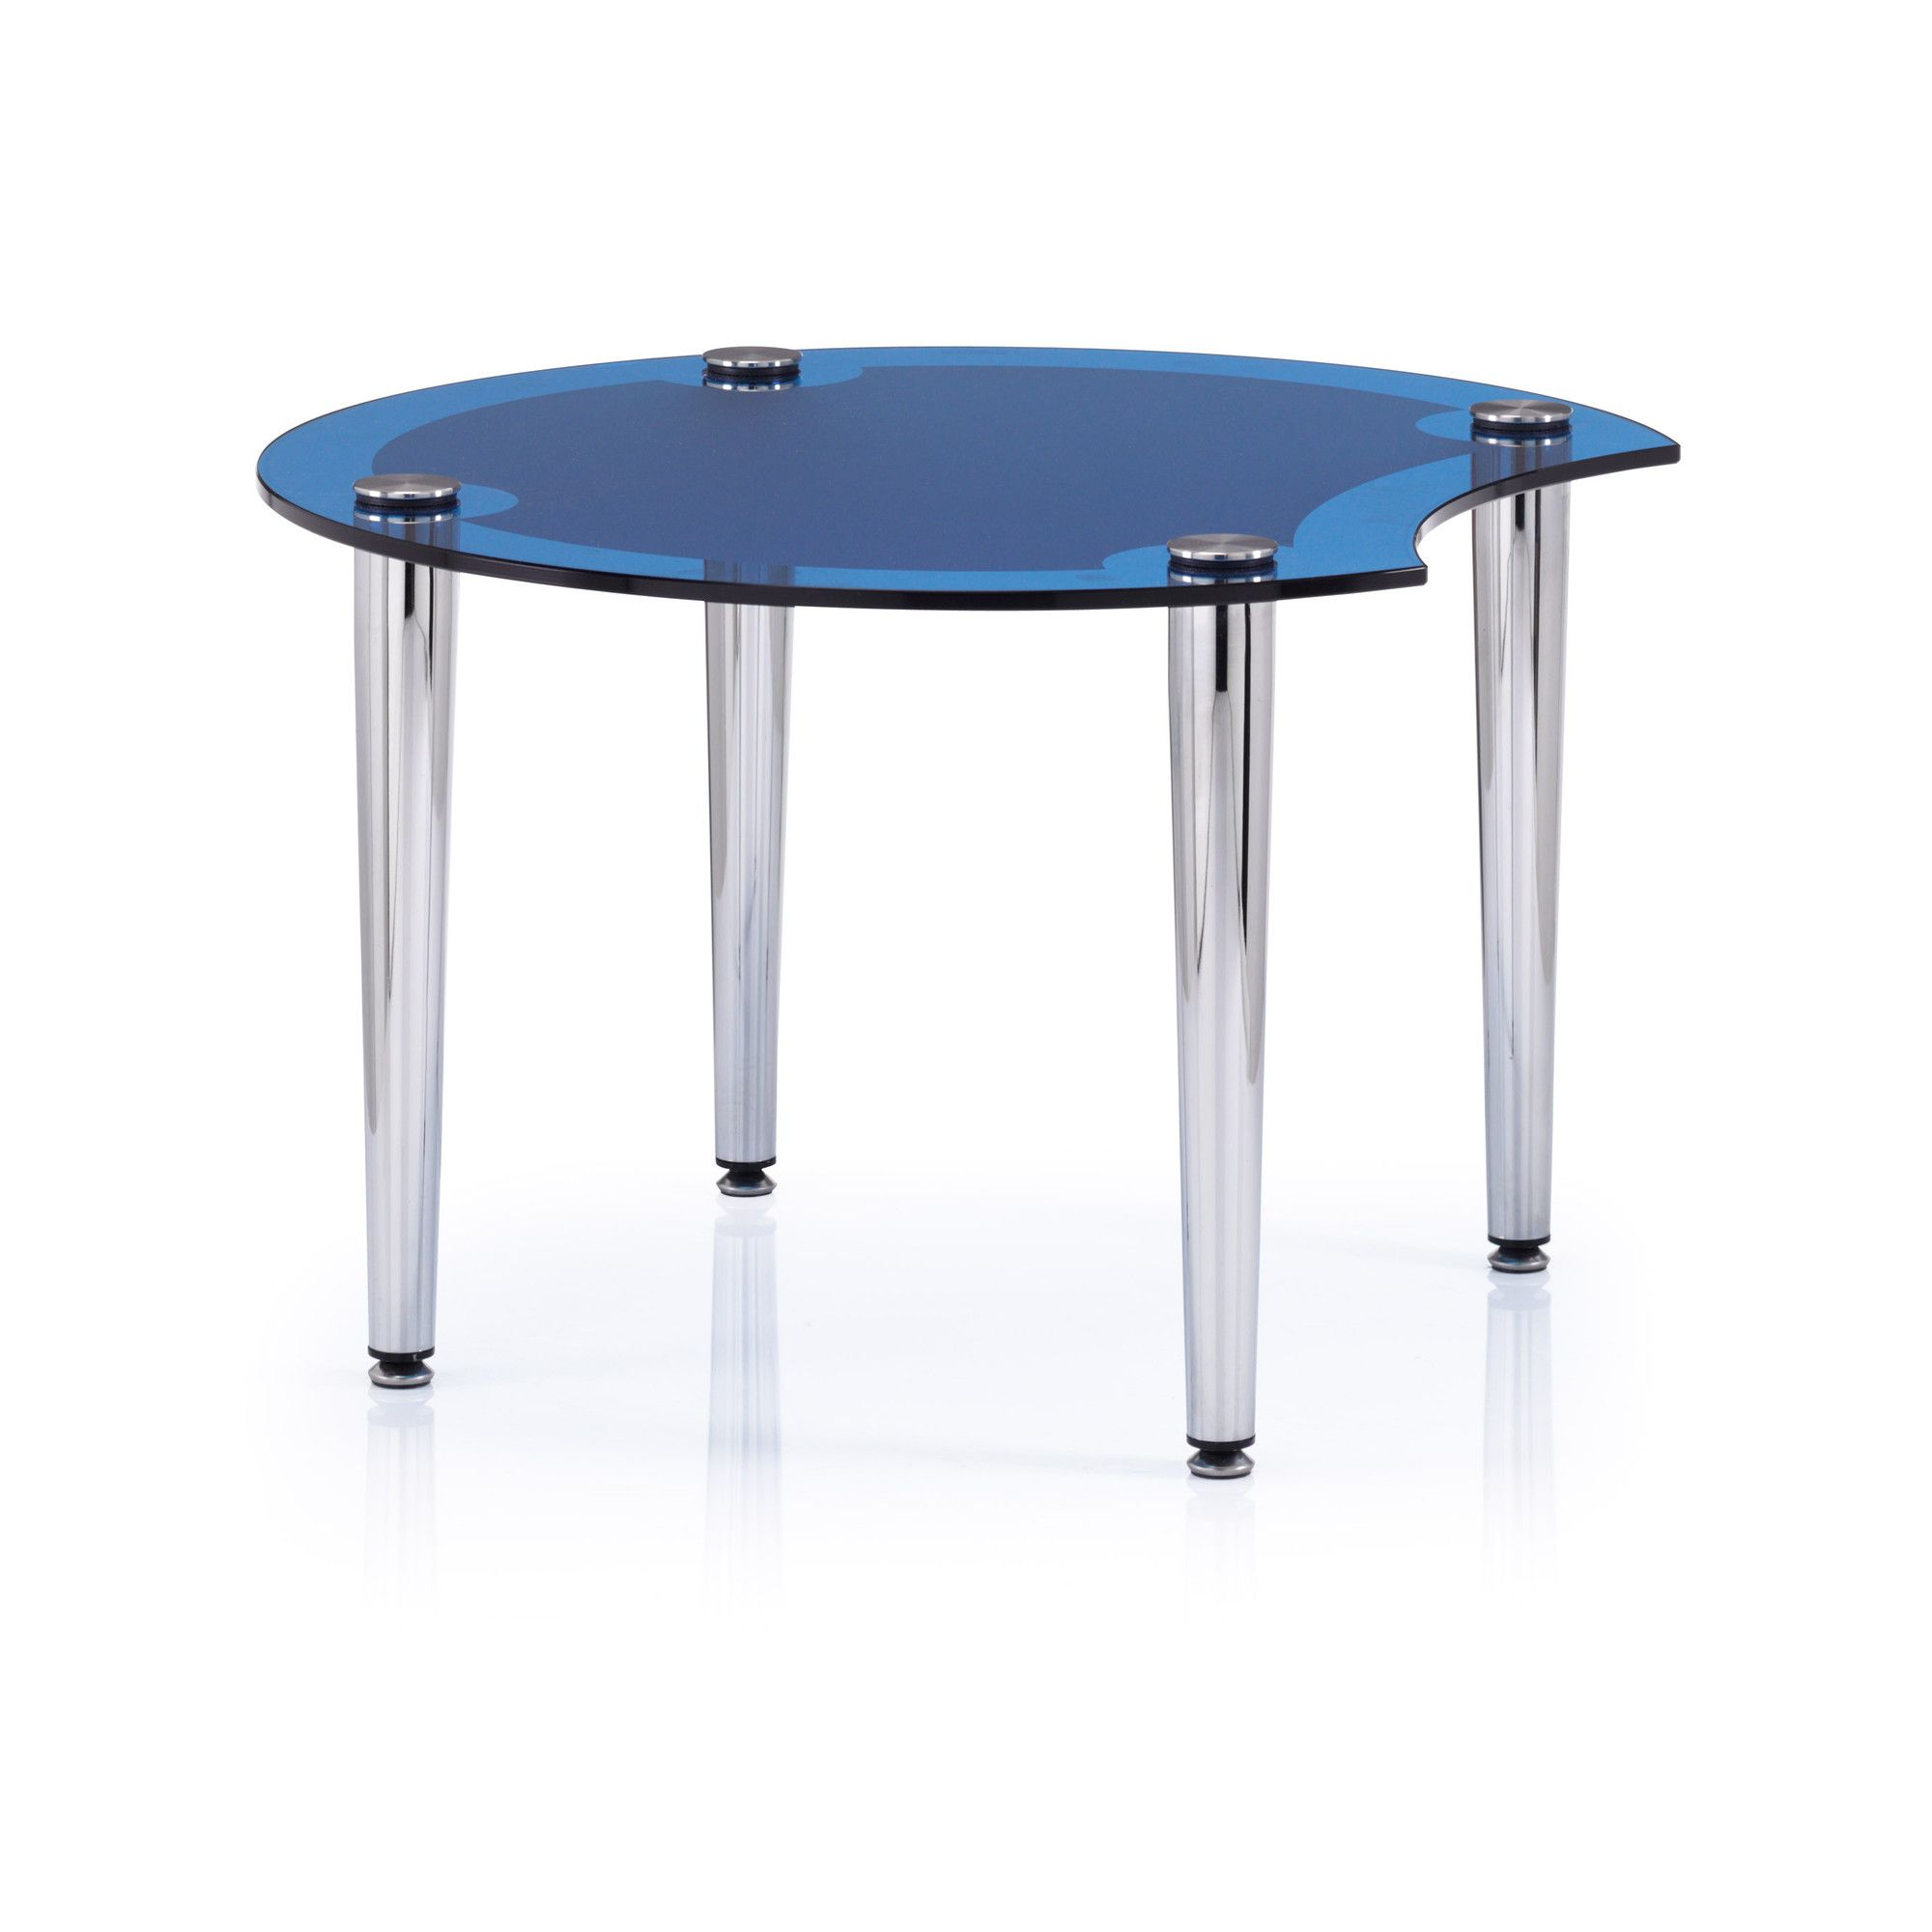 Ocee Design Casino End Table - Blue at Tesco Direct